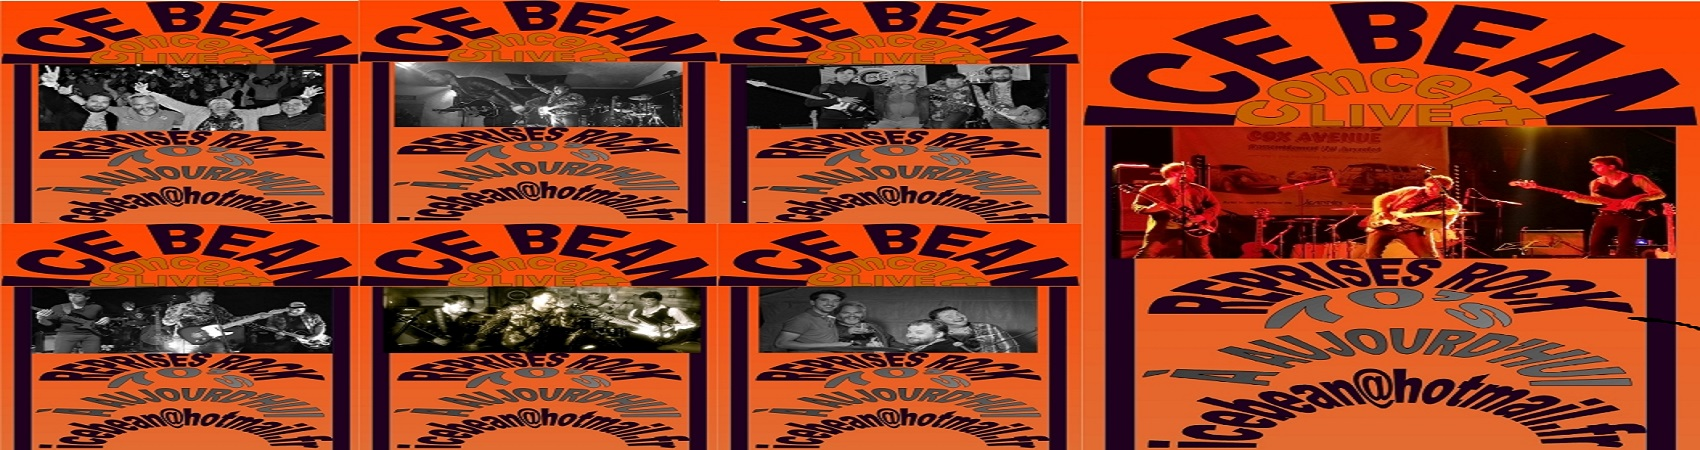 Groupe Rock : The Ice Bean